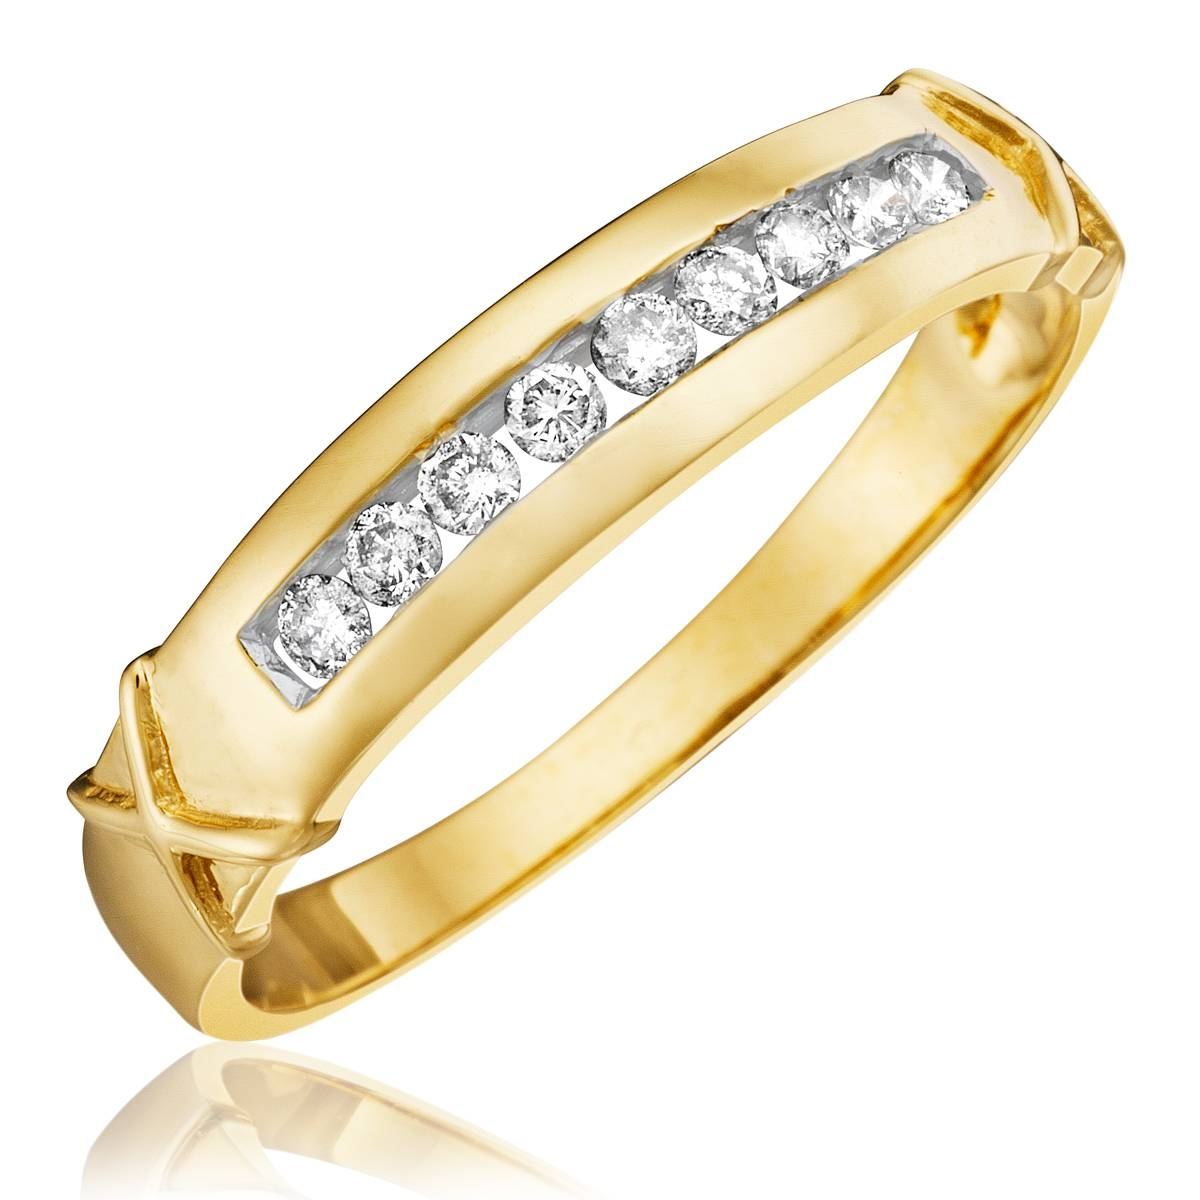 1 Carat Diamond Trio Wedding Ring Set 14K Yellow Gold Pertaining To Men's Wedding Bands Yellow Gold With Diamonds (View 1 of 15)